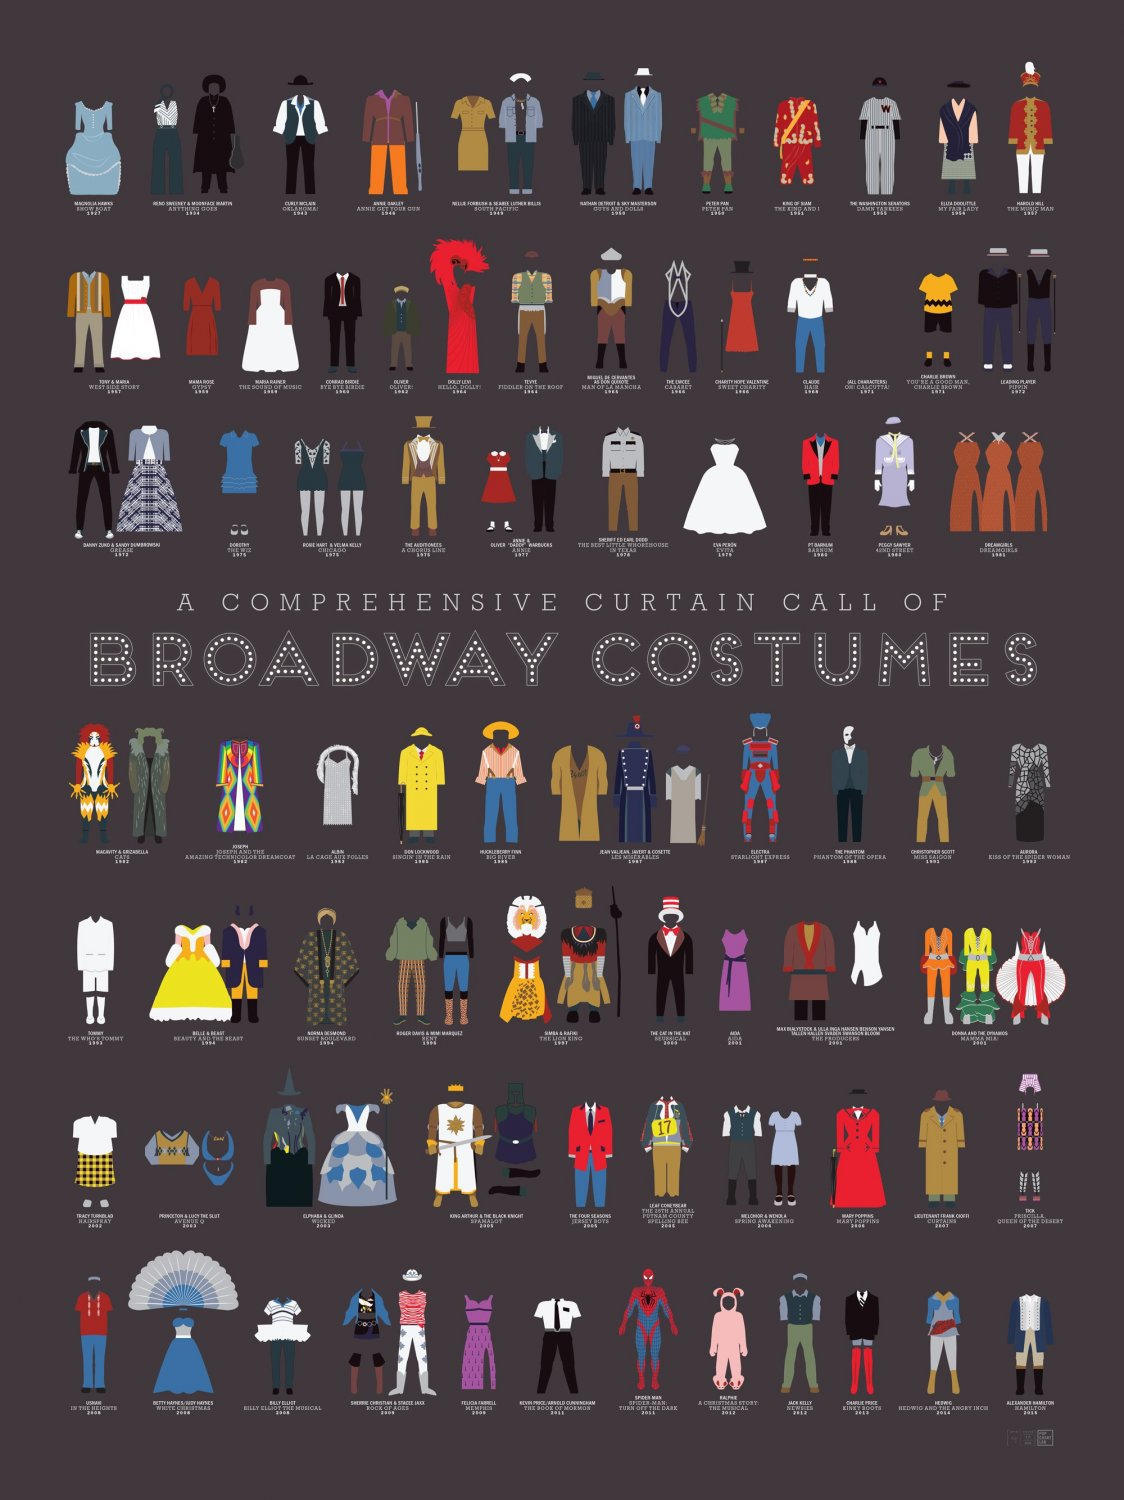 A Comprehensive Curtain Call of Broadway Costumes Chart   18x28 inches Poster Print